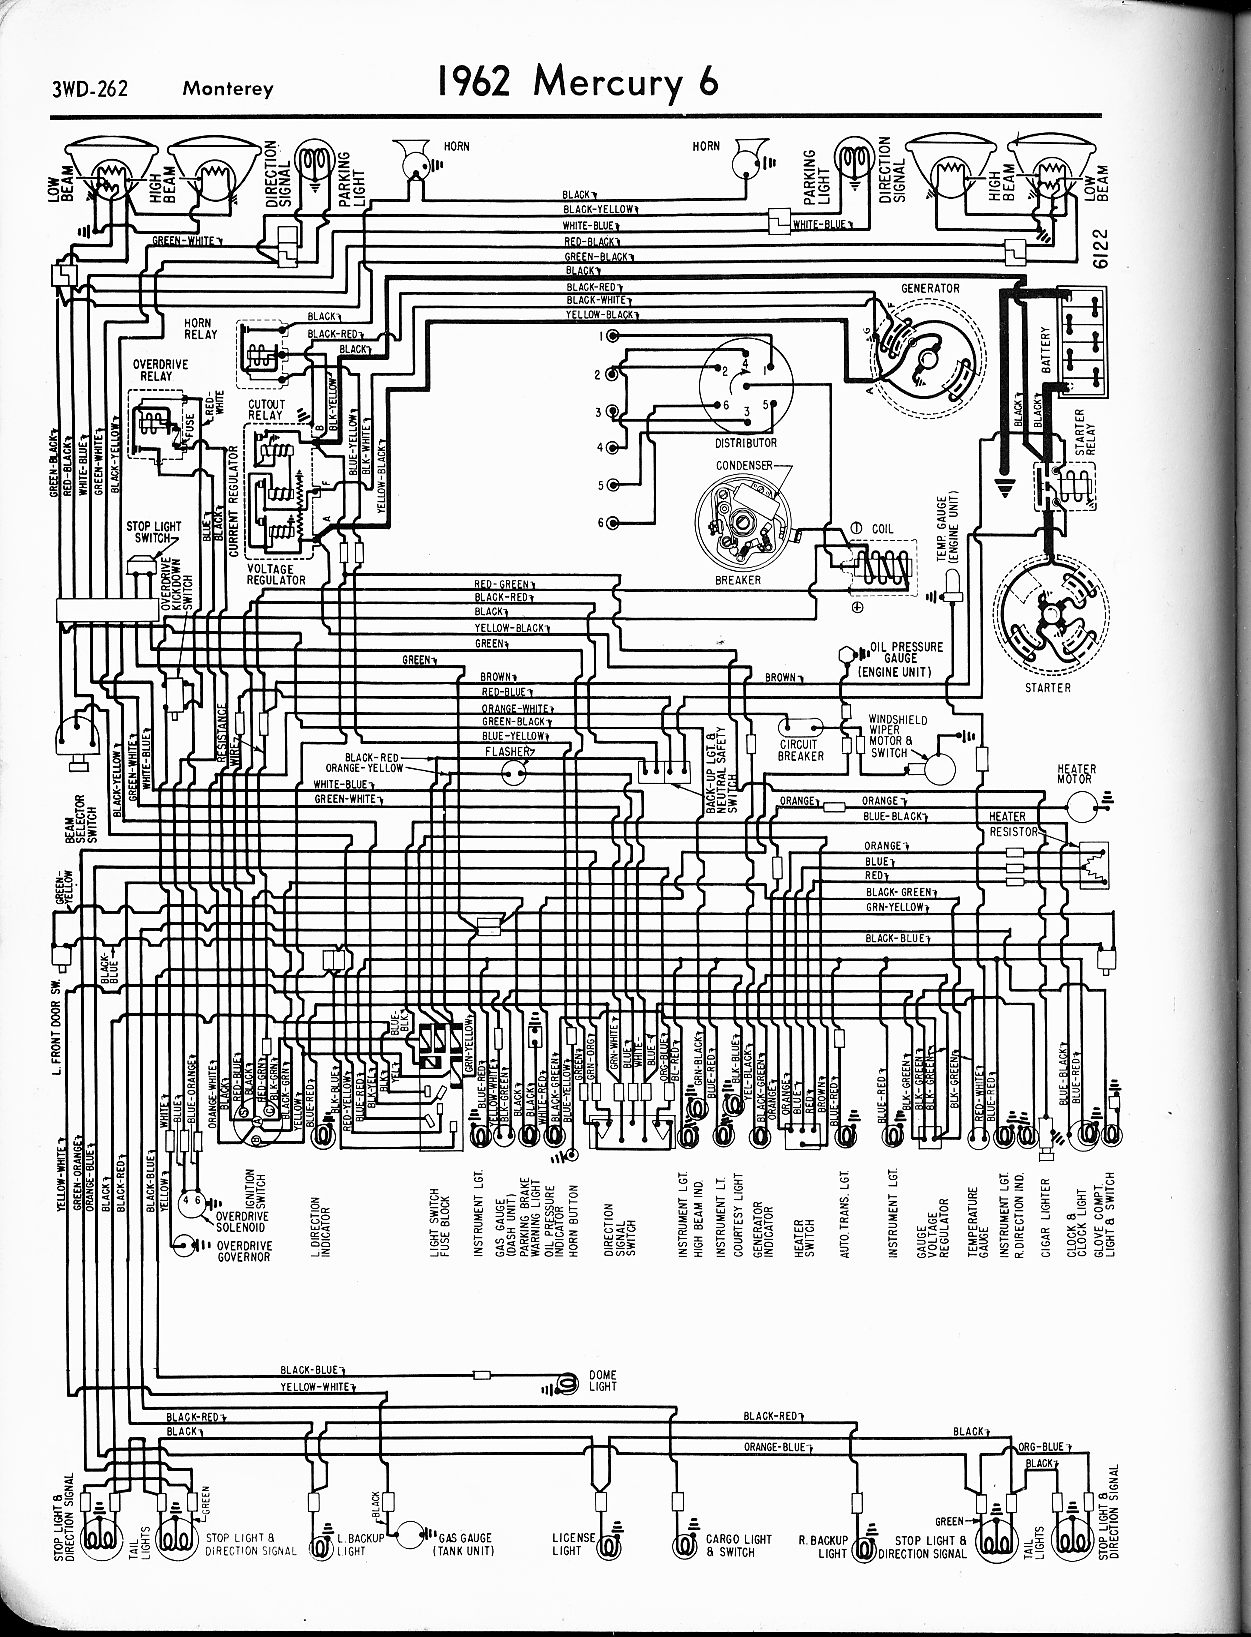 1983 Mercury Capri Wiring Diagram Detailed Schematics 1993 Fuse Box 1940 1991